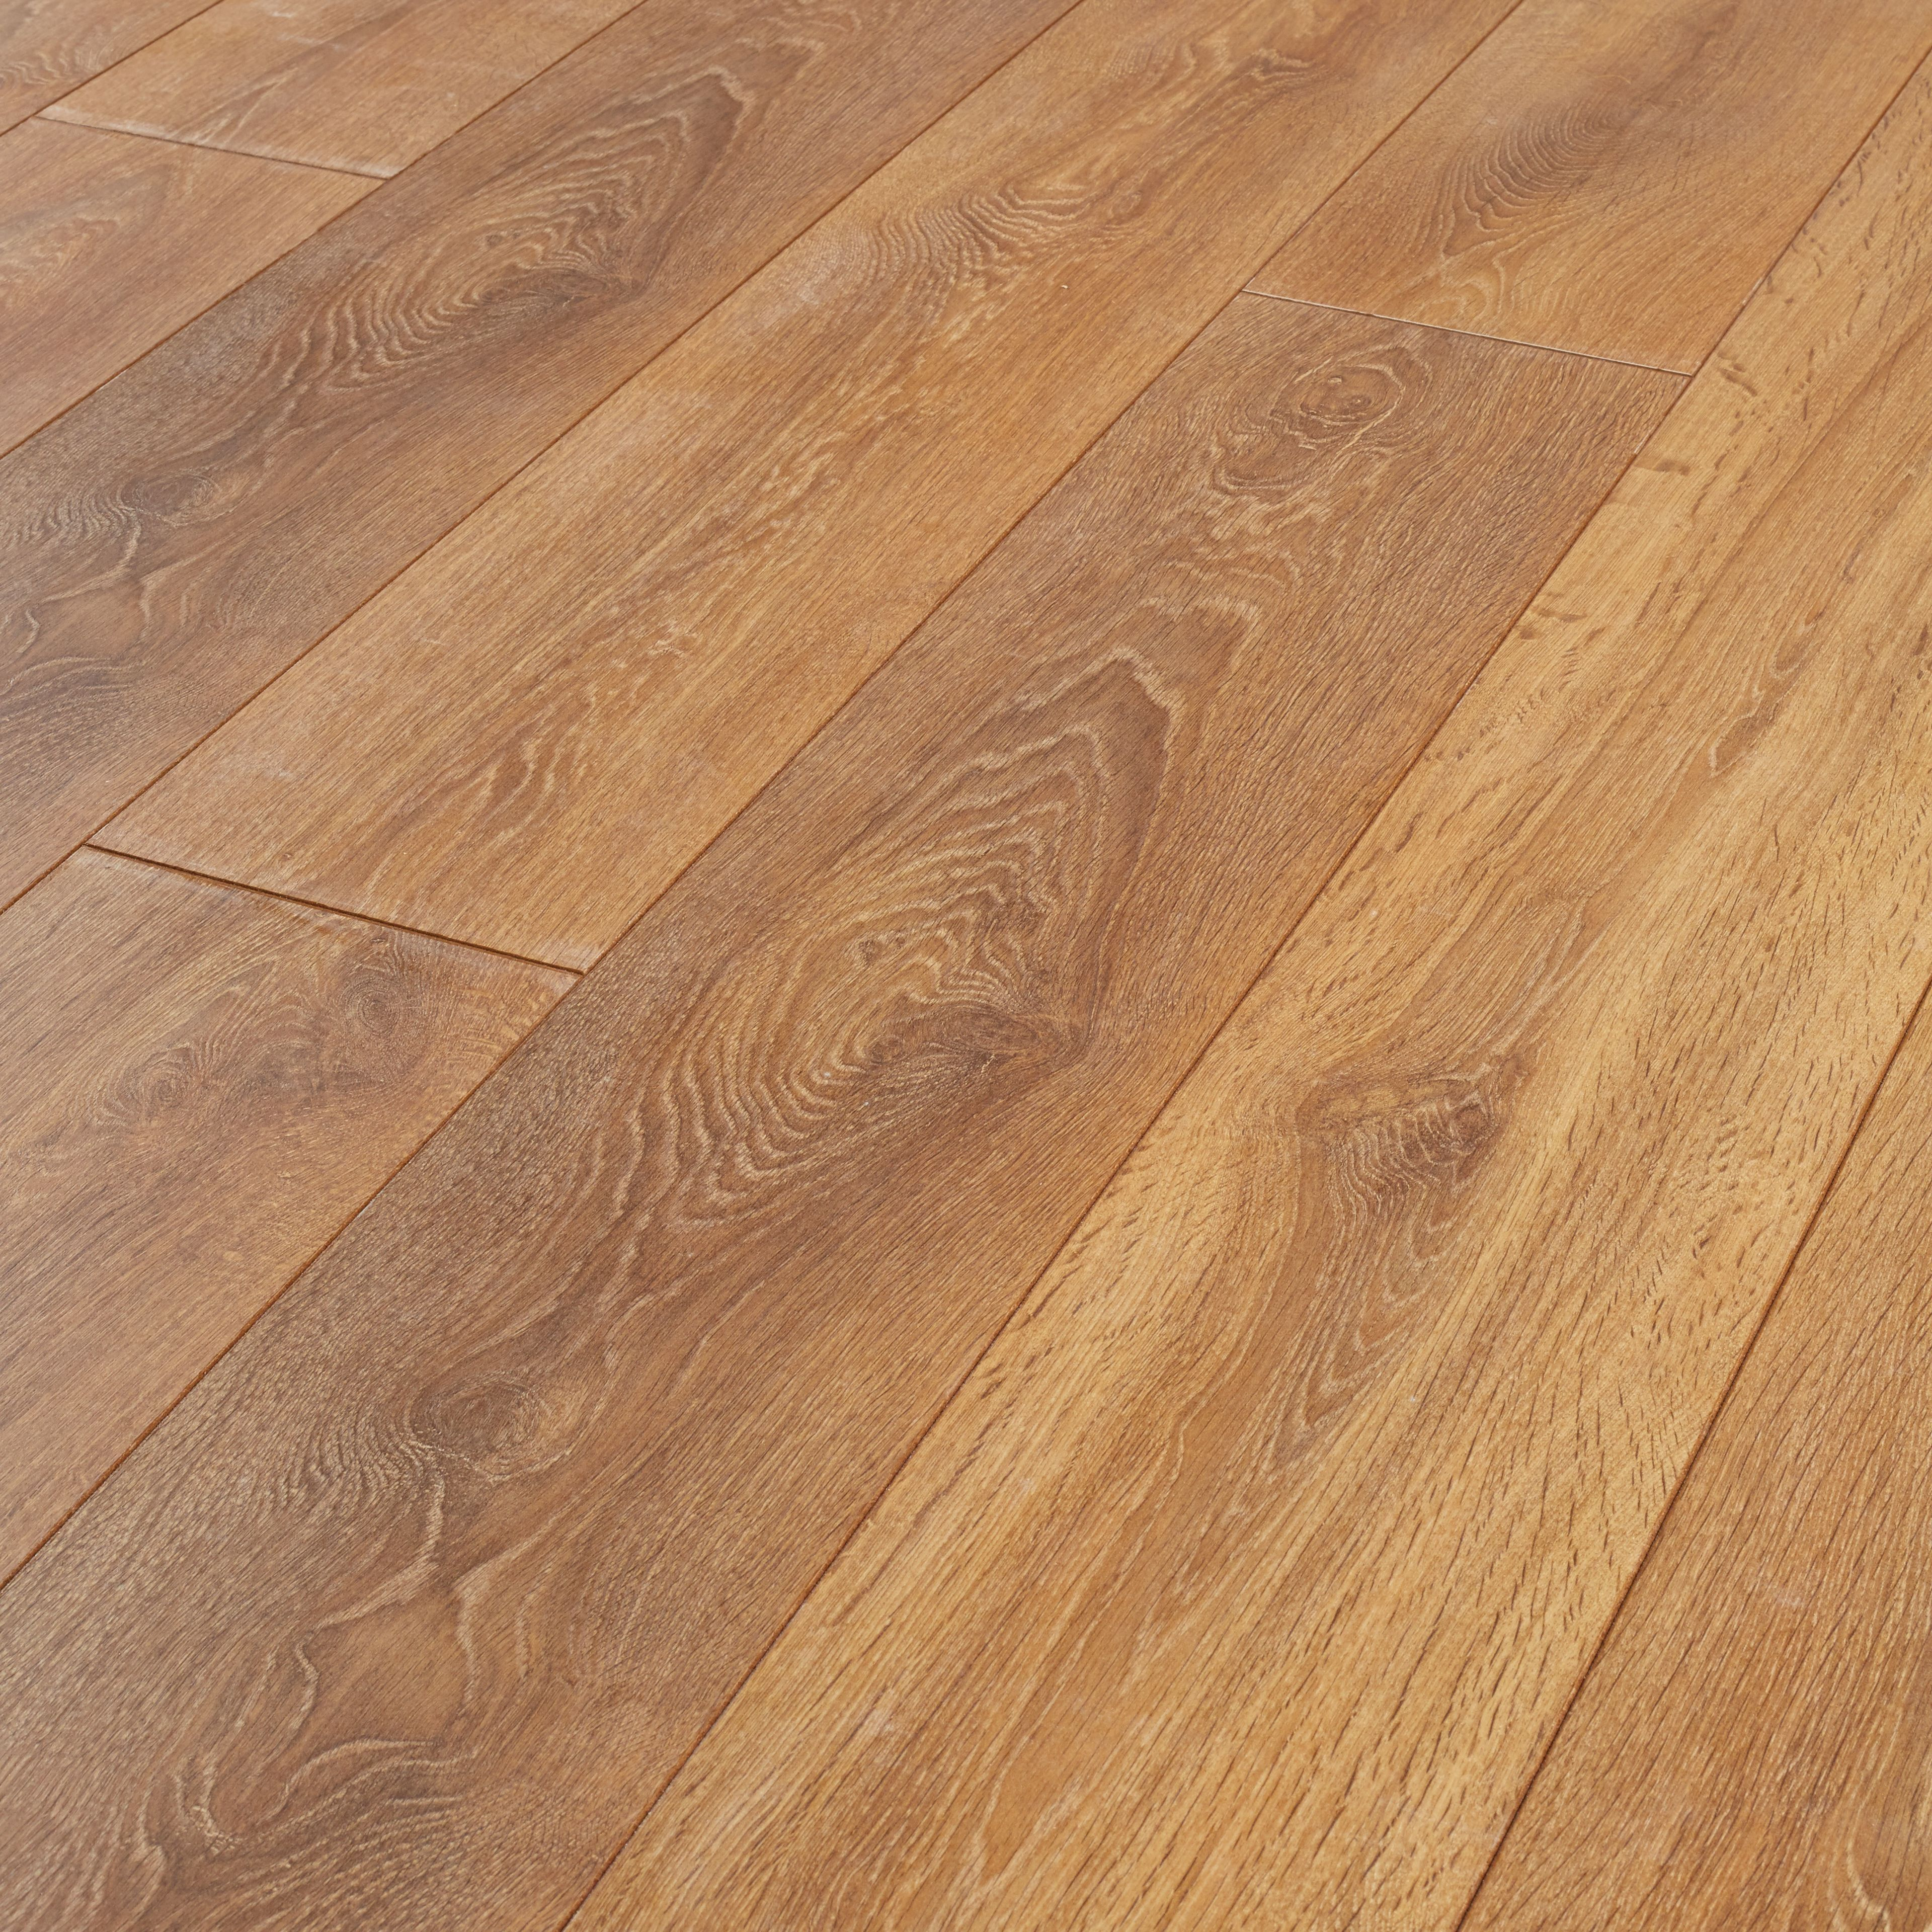 Compare cheap offers & prices of Wickes Aspiran Oak Laminate Flooring manufactured by Wickes